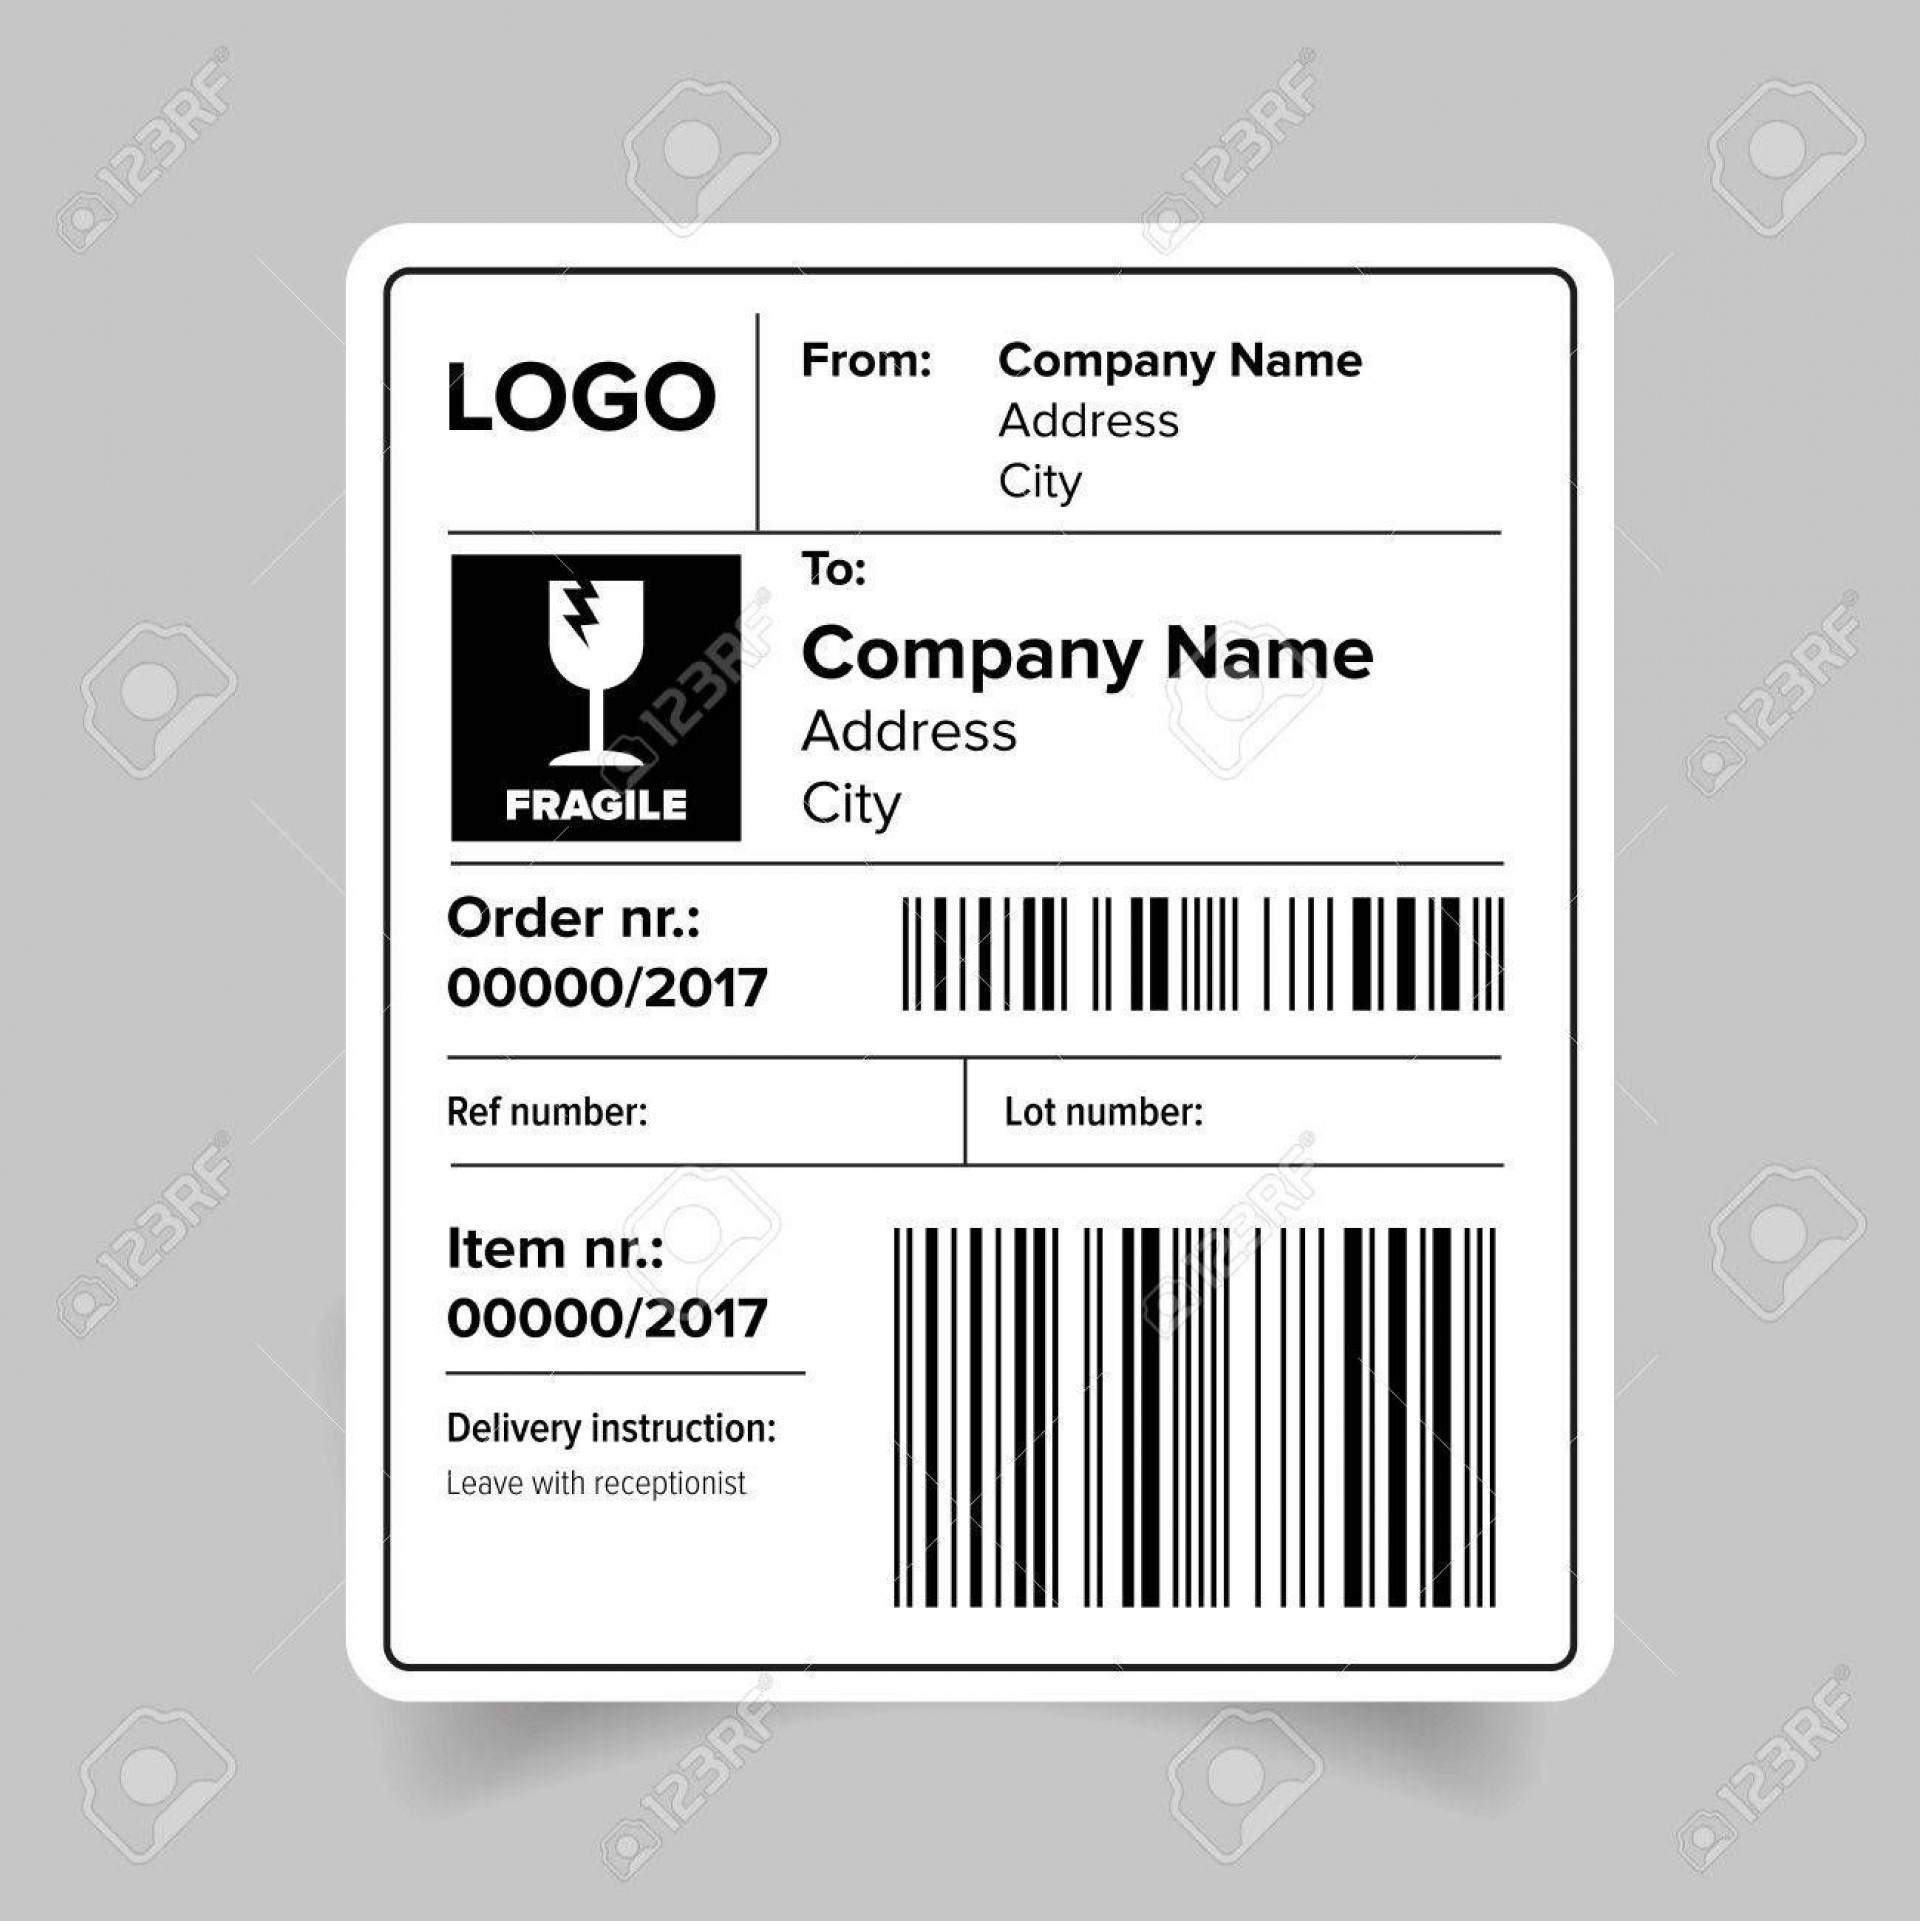 005 Impressive Cute Shipping Label Template Free Concept 1920